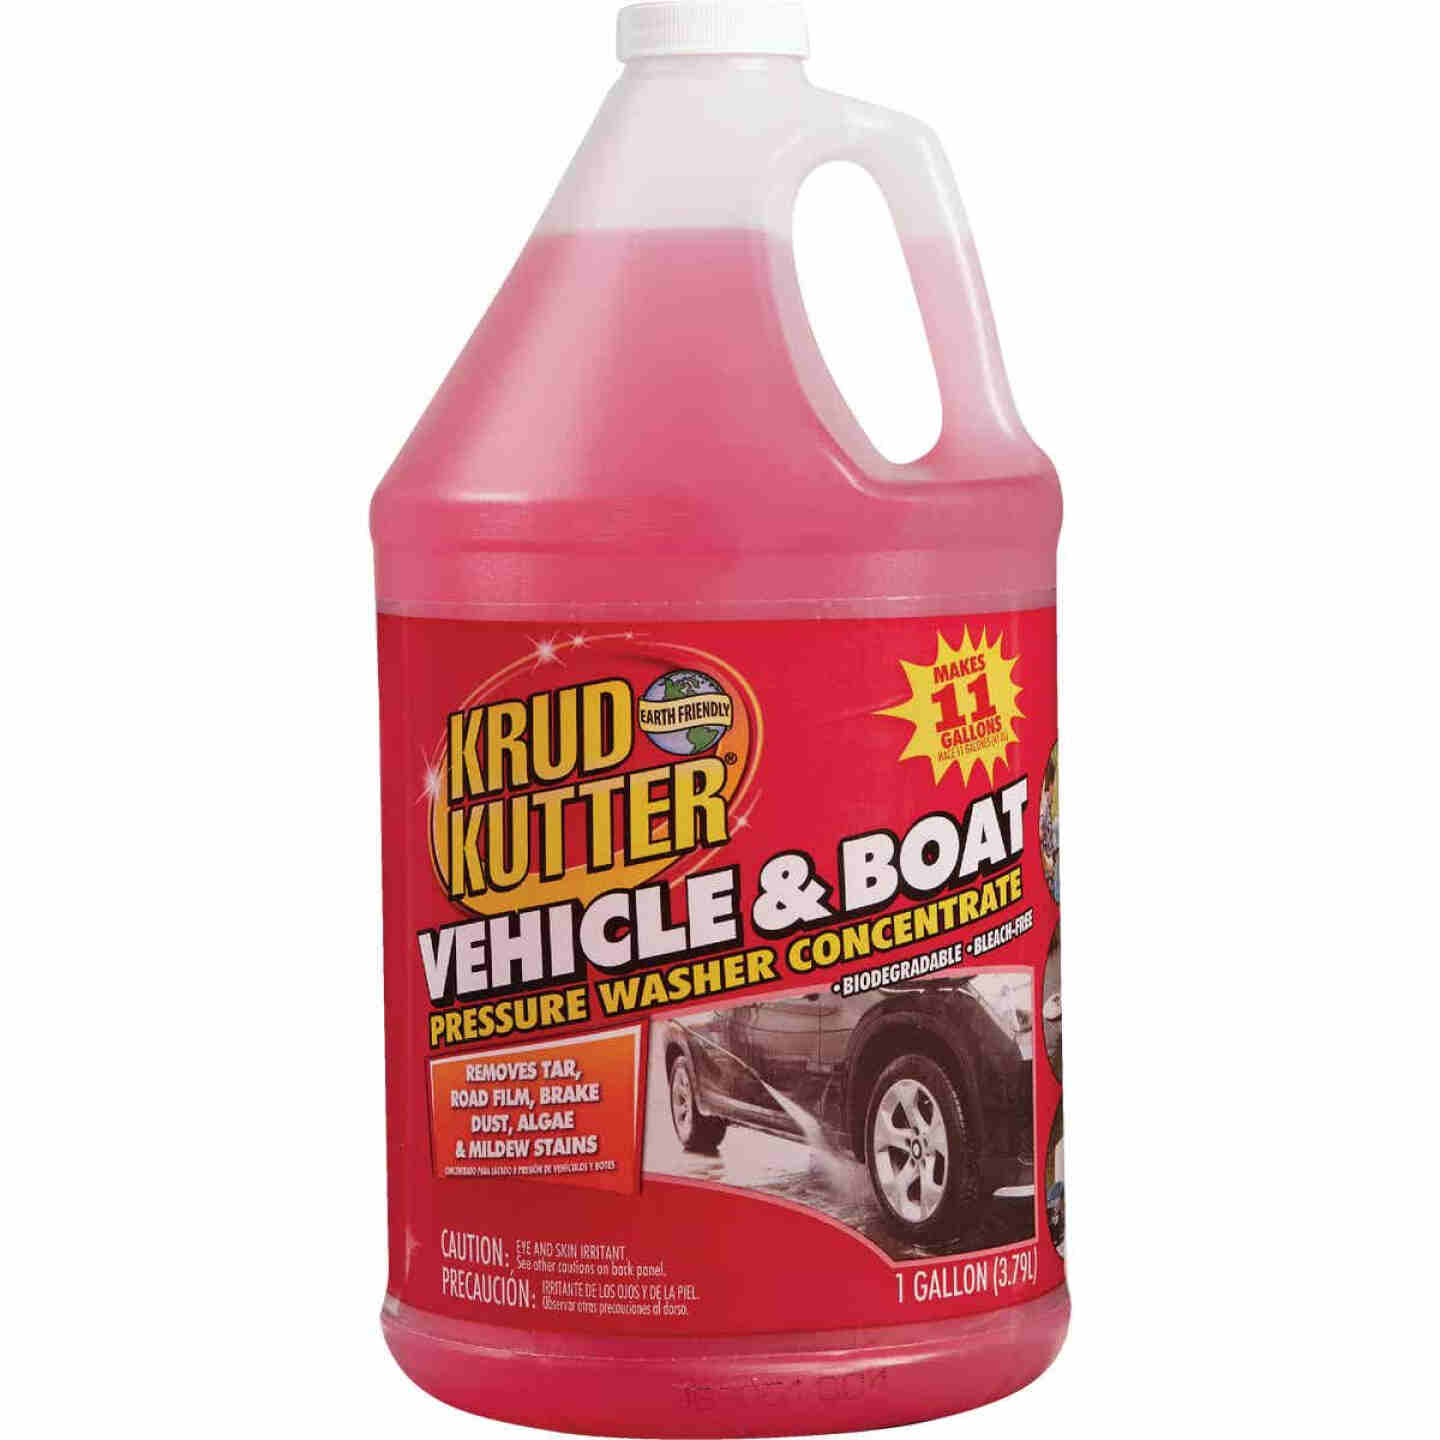 Krud Kutter 1 Gal. Vehicle & Boat Pressure Washer Concentrate Cleaner Image 1